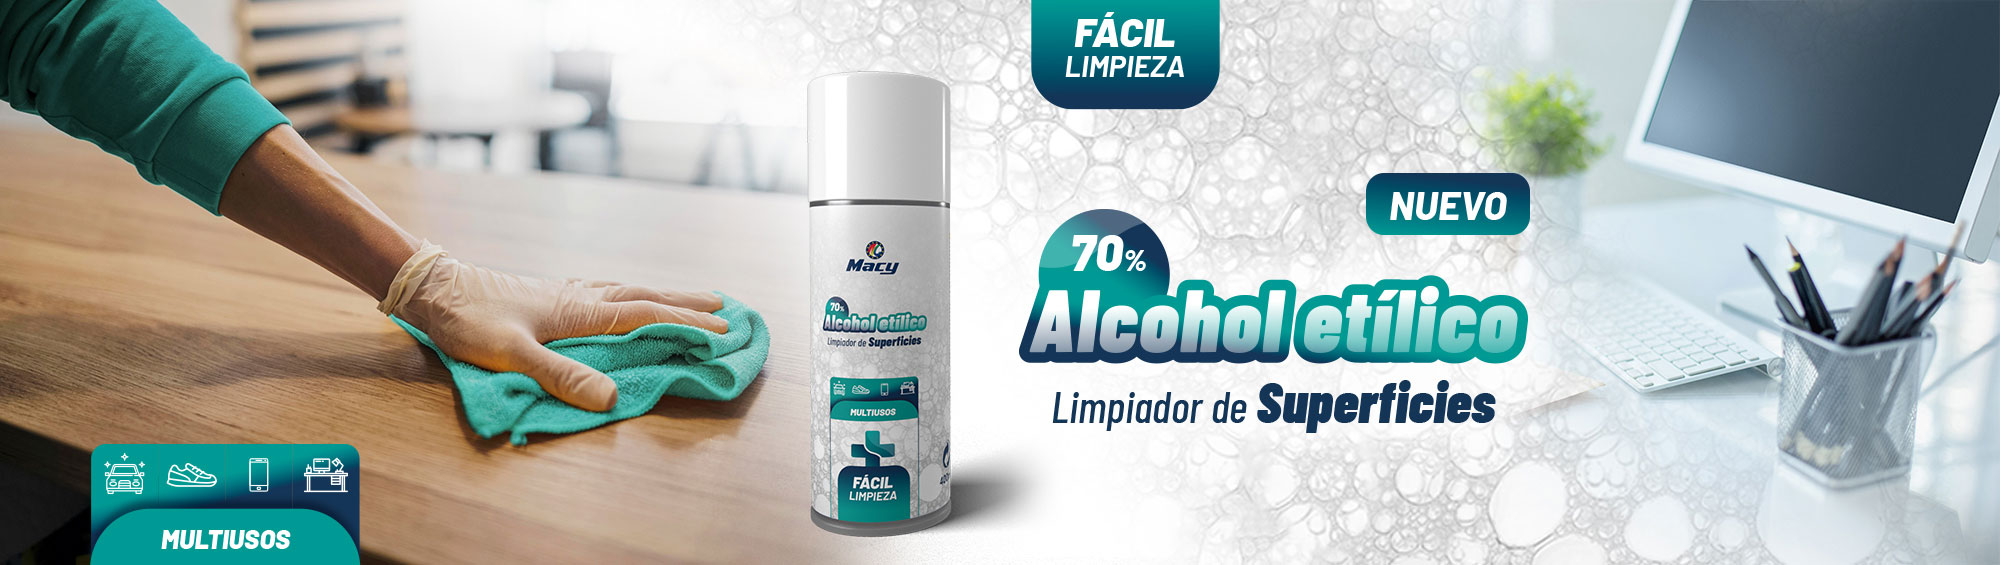 LIMPIADOR DE SUPERFICIES ALCOHOL ETÍLICO 70%